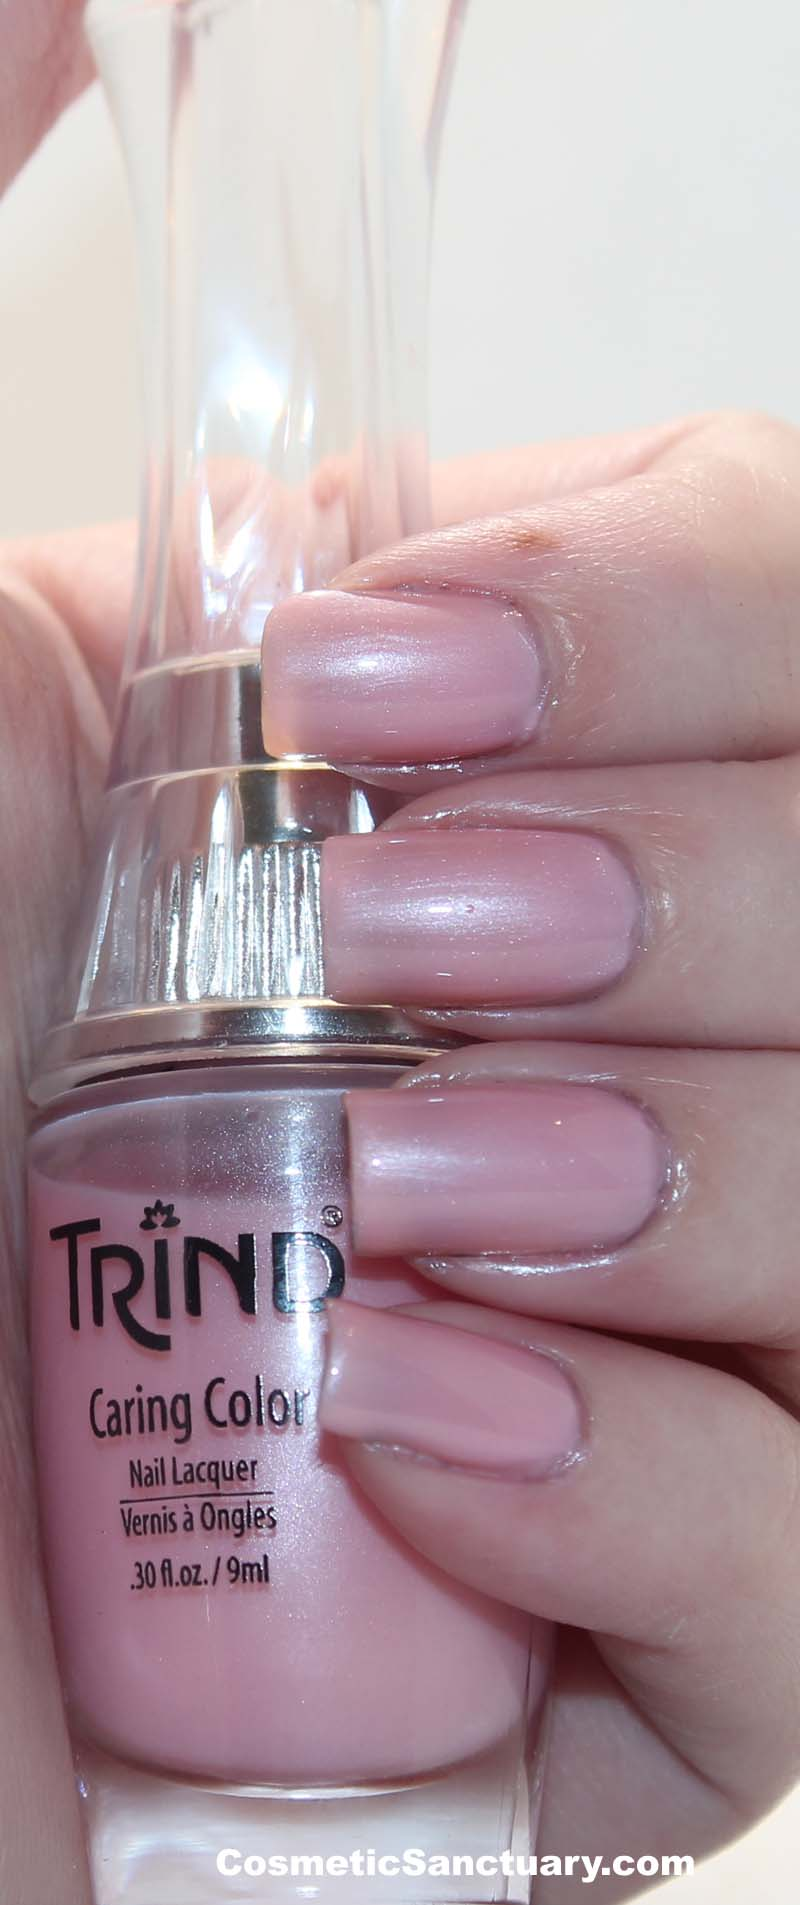 Trind Caring Colors Nail Lacquer Swatches and Reviews